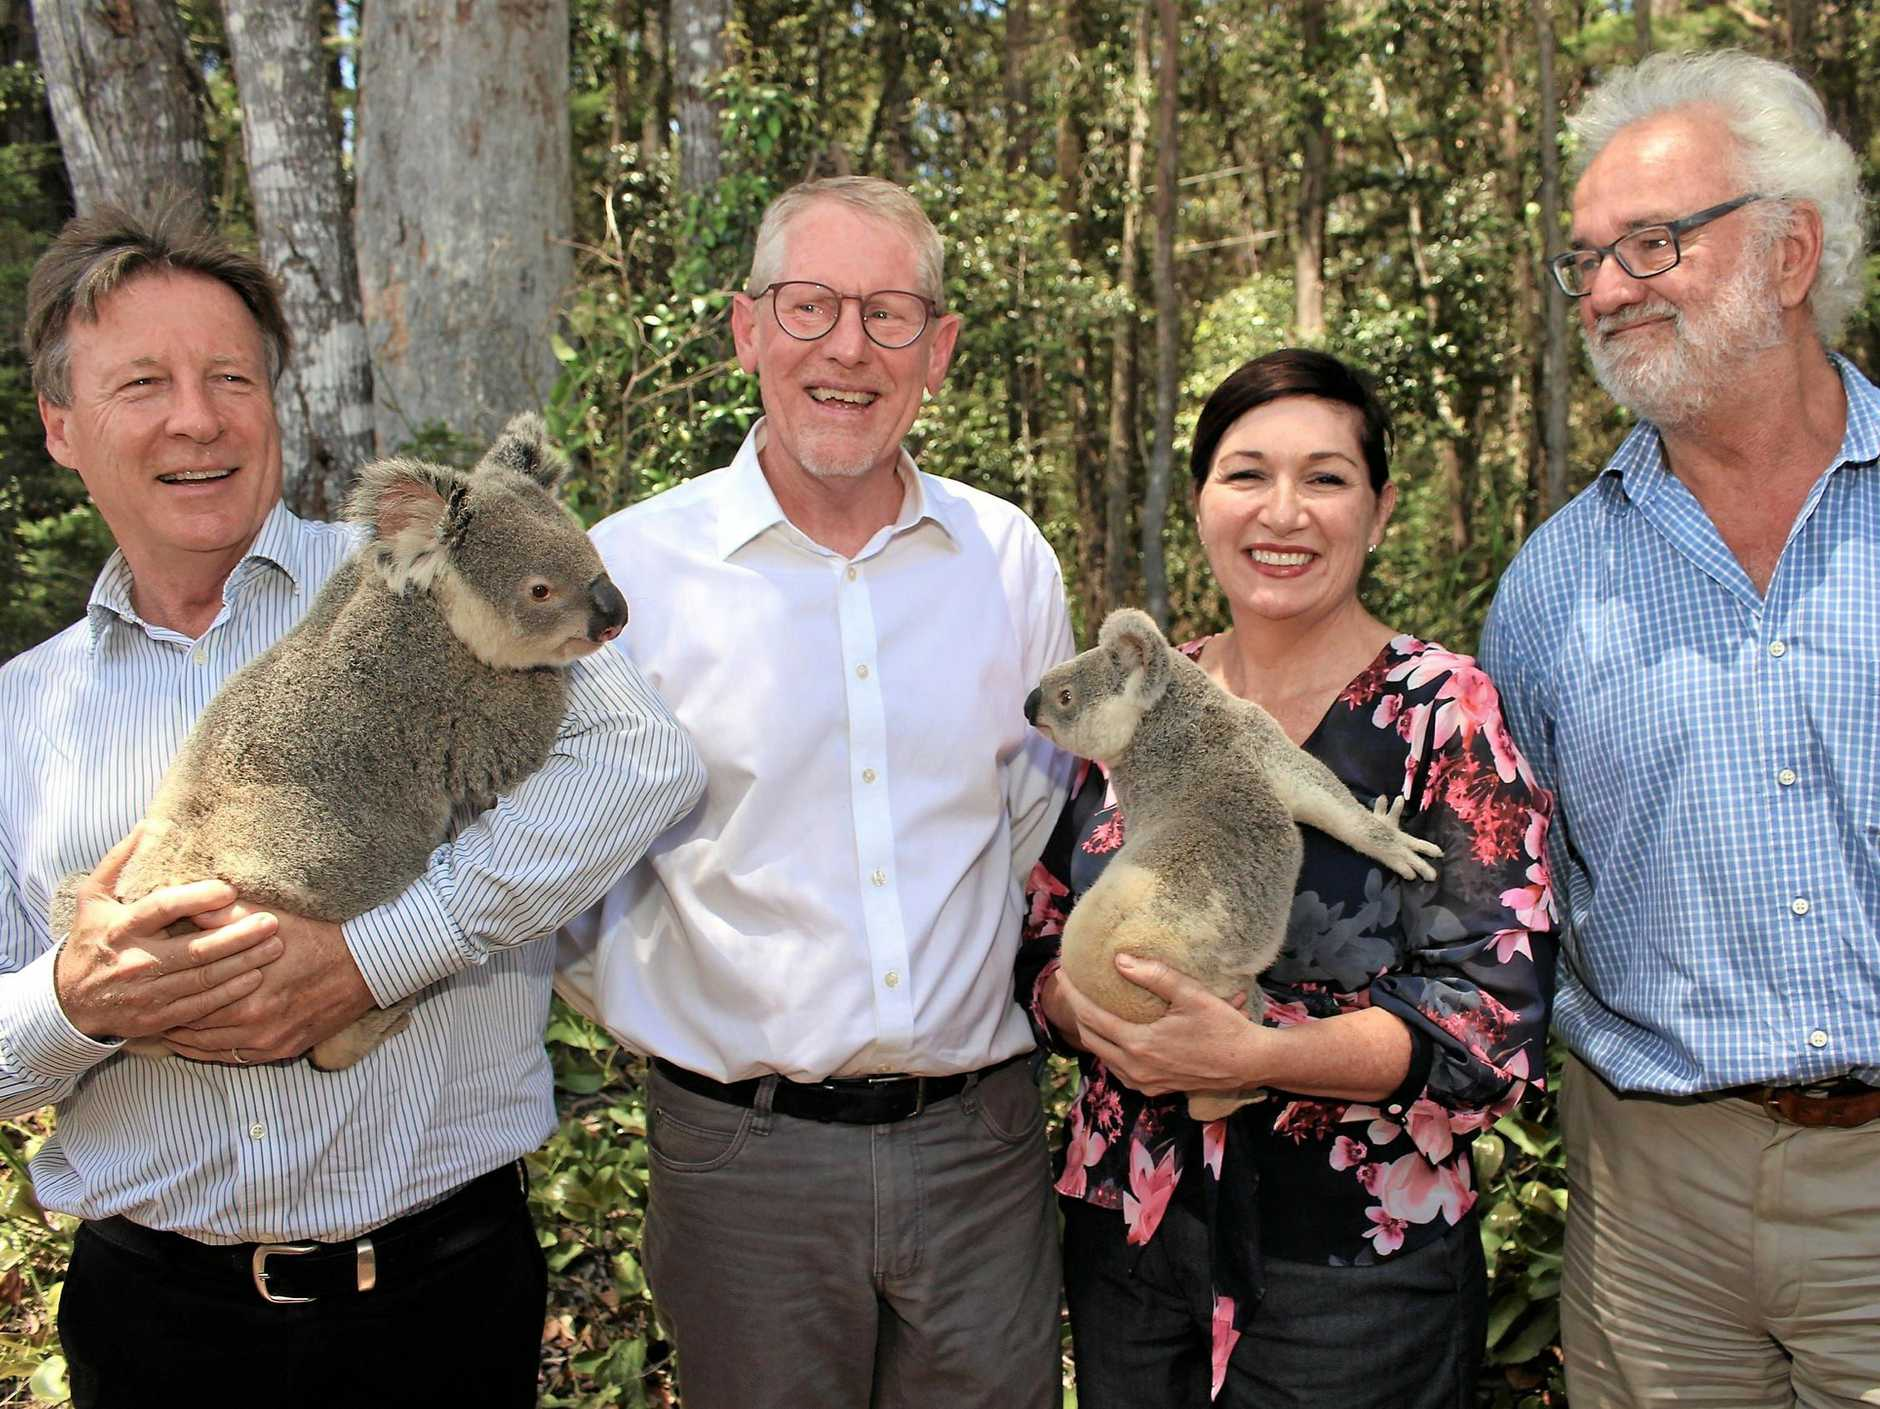 (L-R) Tony Wellington (Noosa Mayor), David West (HQPlantations Group Manager Stewardship), Leeanne Enoch (State Minister for Environment and the Great Barrier Reef, Science, and the Arts), and Dr Michael Gloster (Noosa Parks Association President).